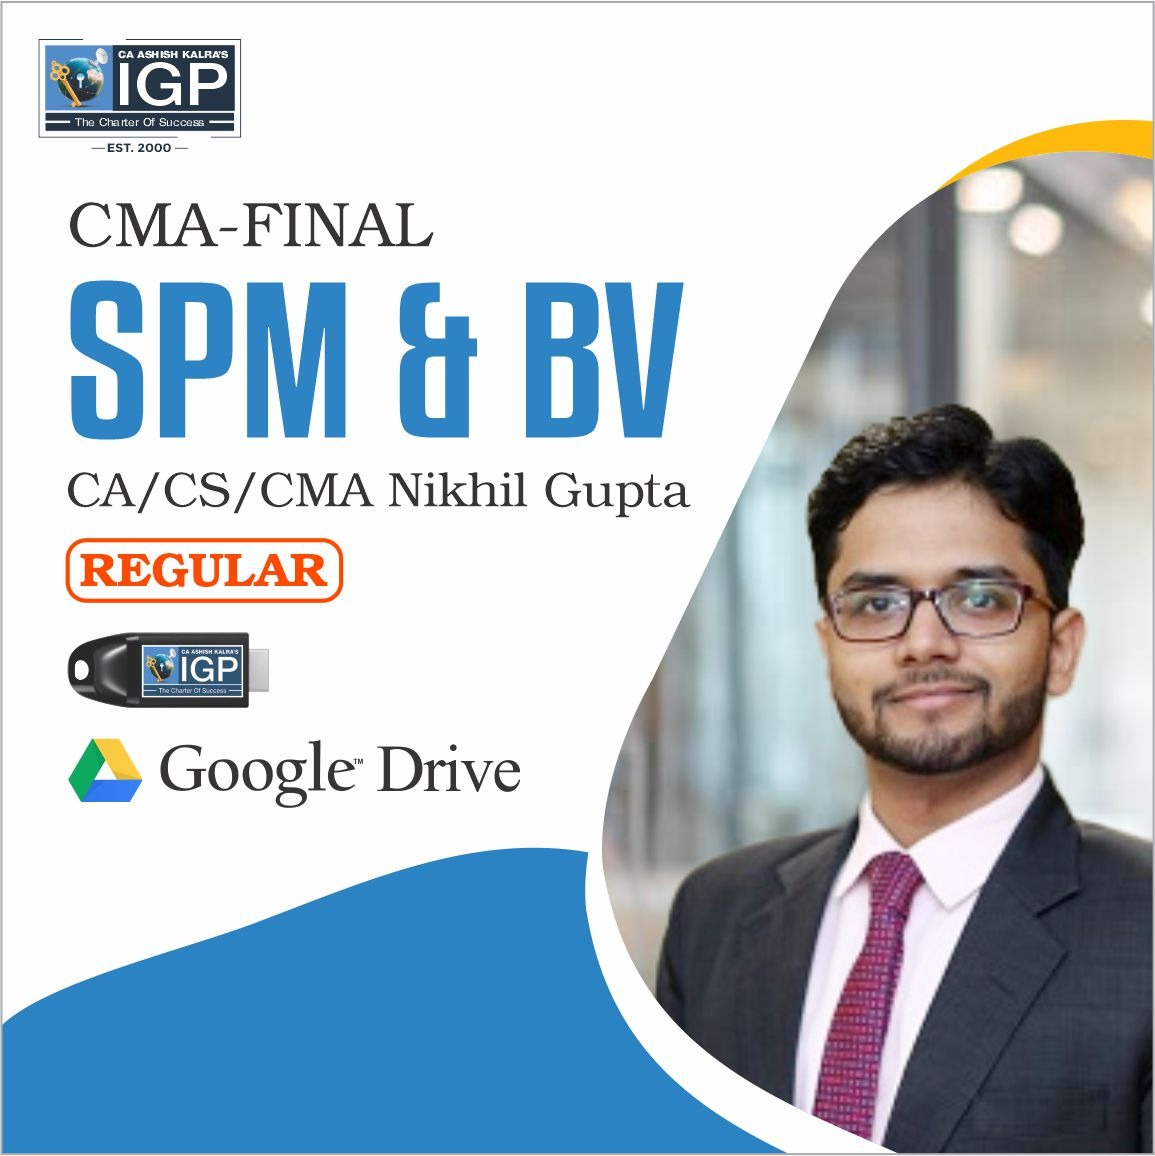 CMA Final, New Course BVM / SPM -CMA-Final-Strategic Performance Management and Business Valuation- CA/CS/CMA NIKKHIL GUPTA